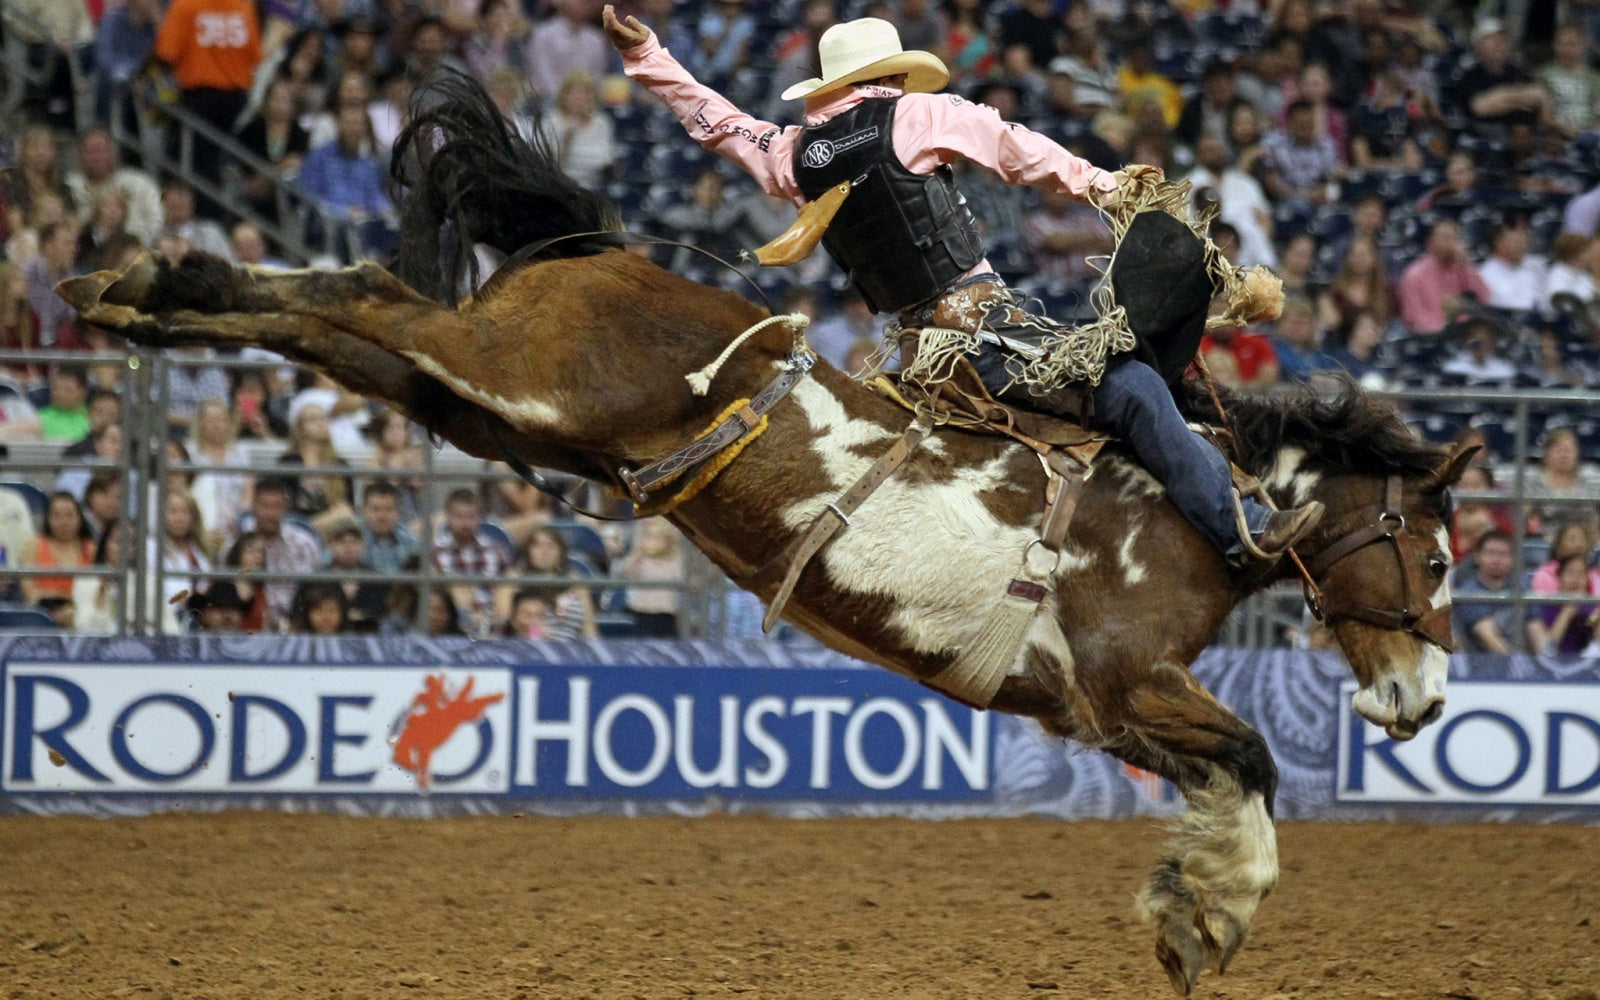 La SMP presente en el Houston Livestock Show and Rodeo